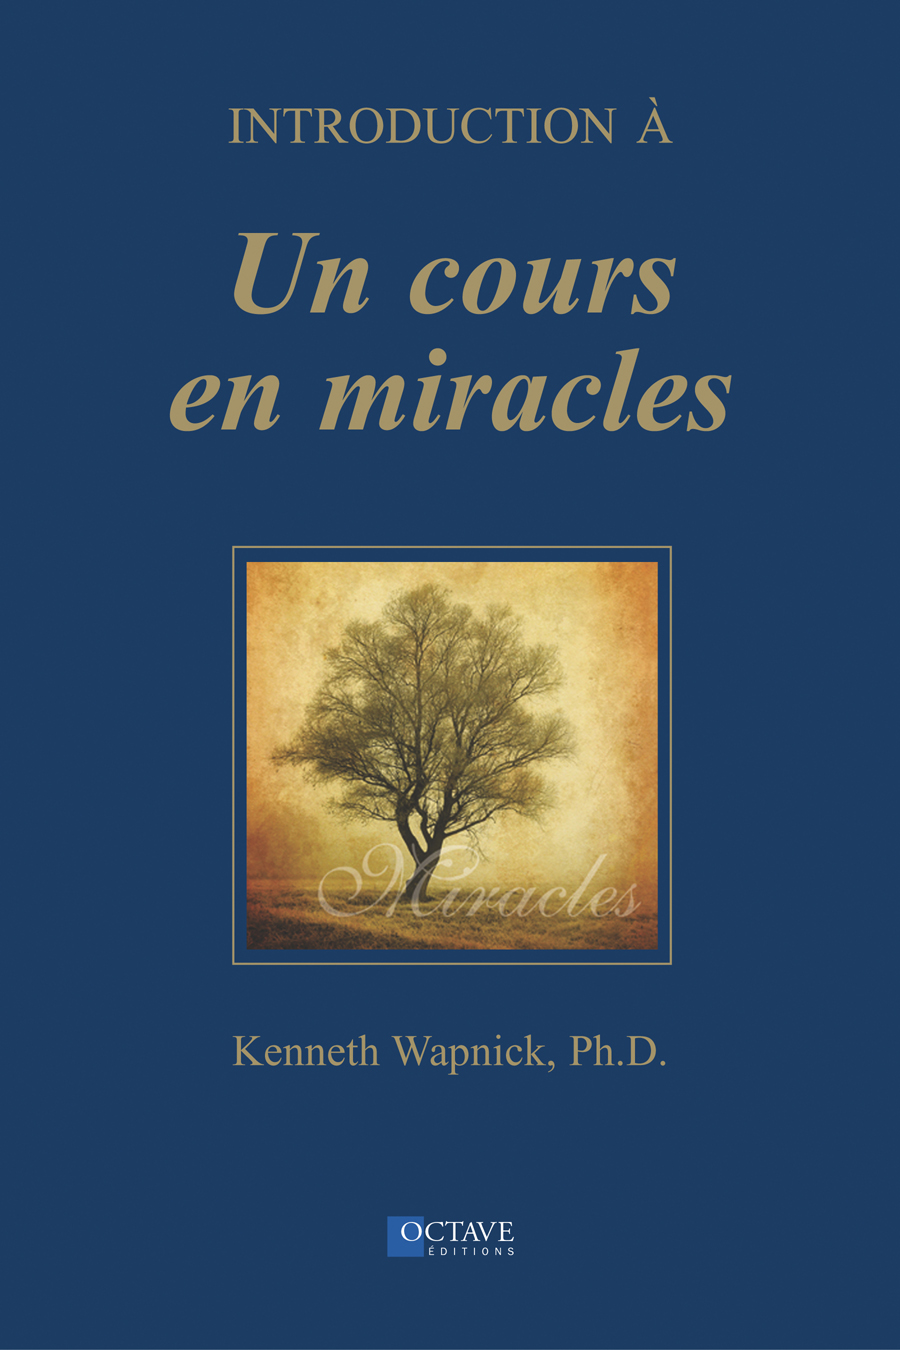 INTRODUCTION À UN COURS EN MIRACLES <i>Kenneth Wapnick</i>